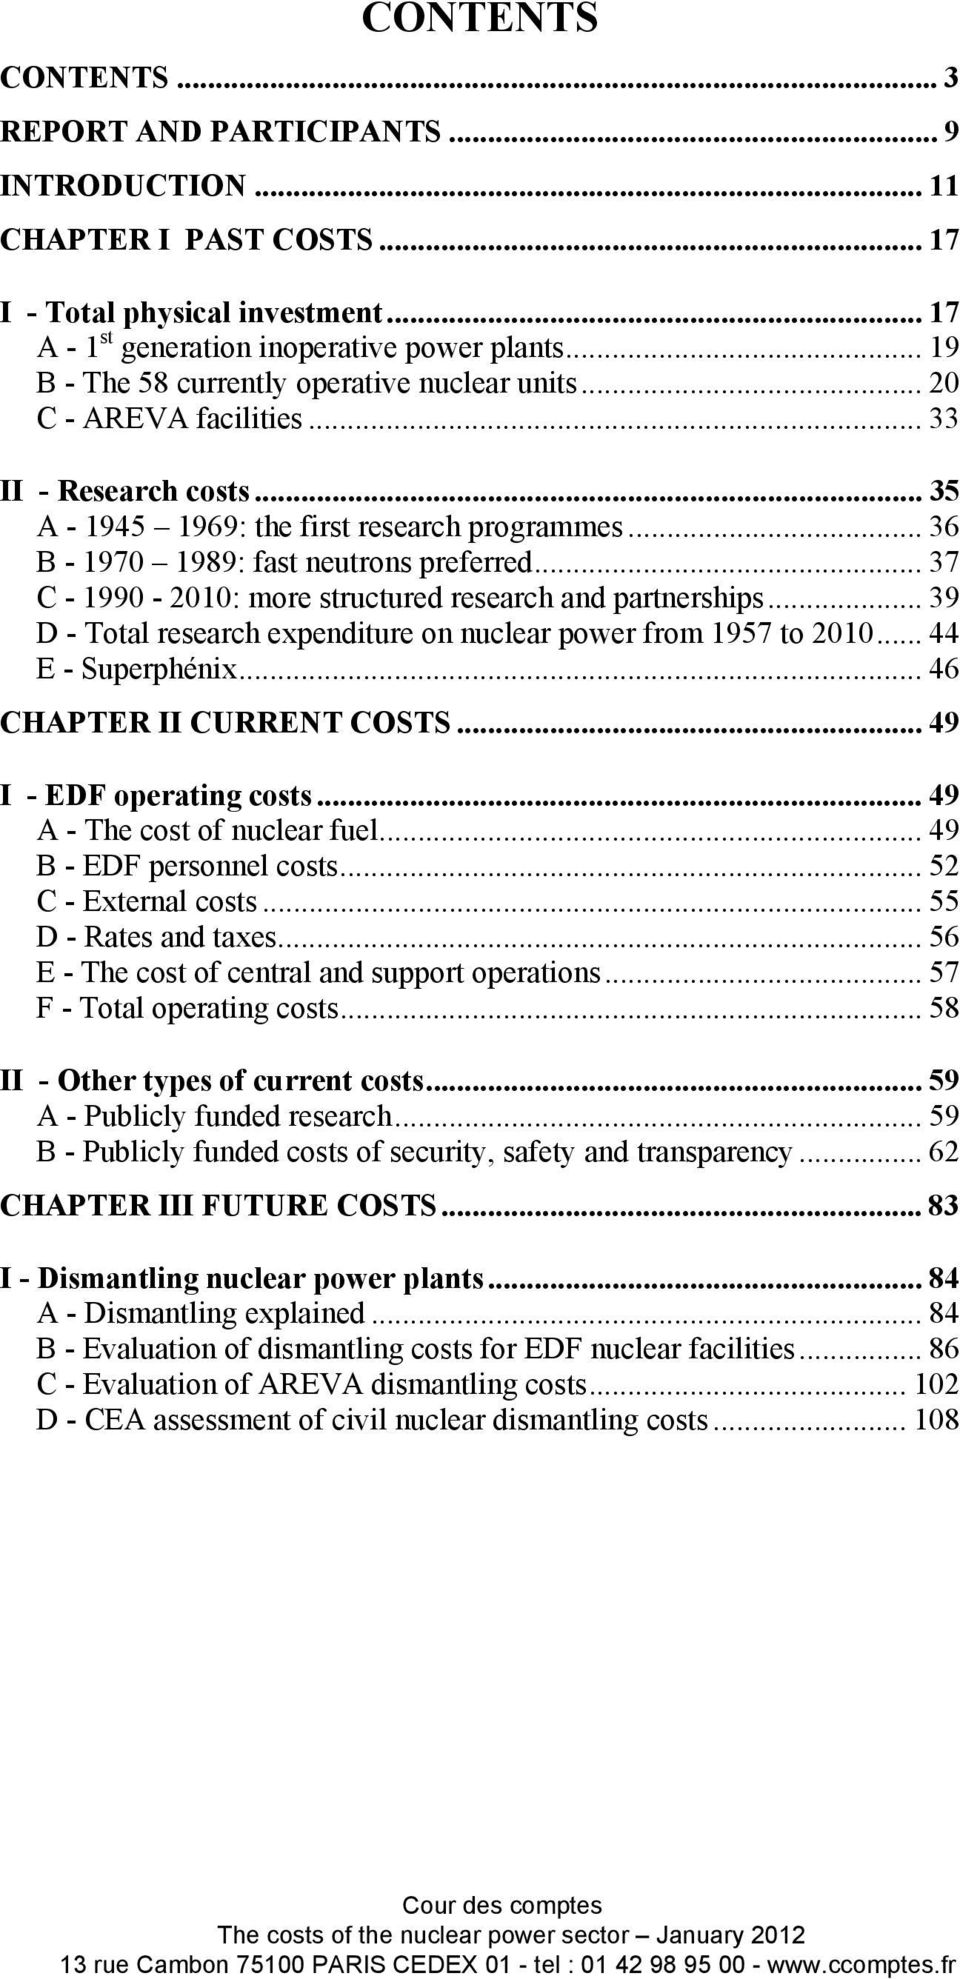 .. 37 C - 1990-2010: more structured research and partnerships... 39 D - Total research expenditure on nuclear power from 1957 to 2010... 44 E - Superphénix... 46 CHAPTER II CURRENT COSTS.